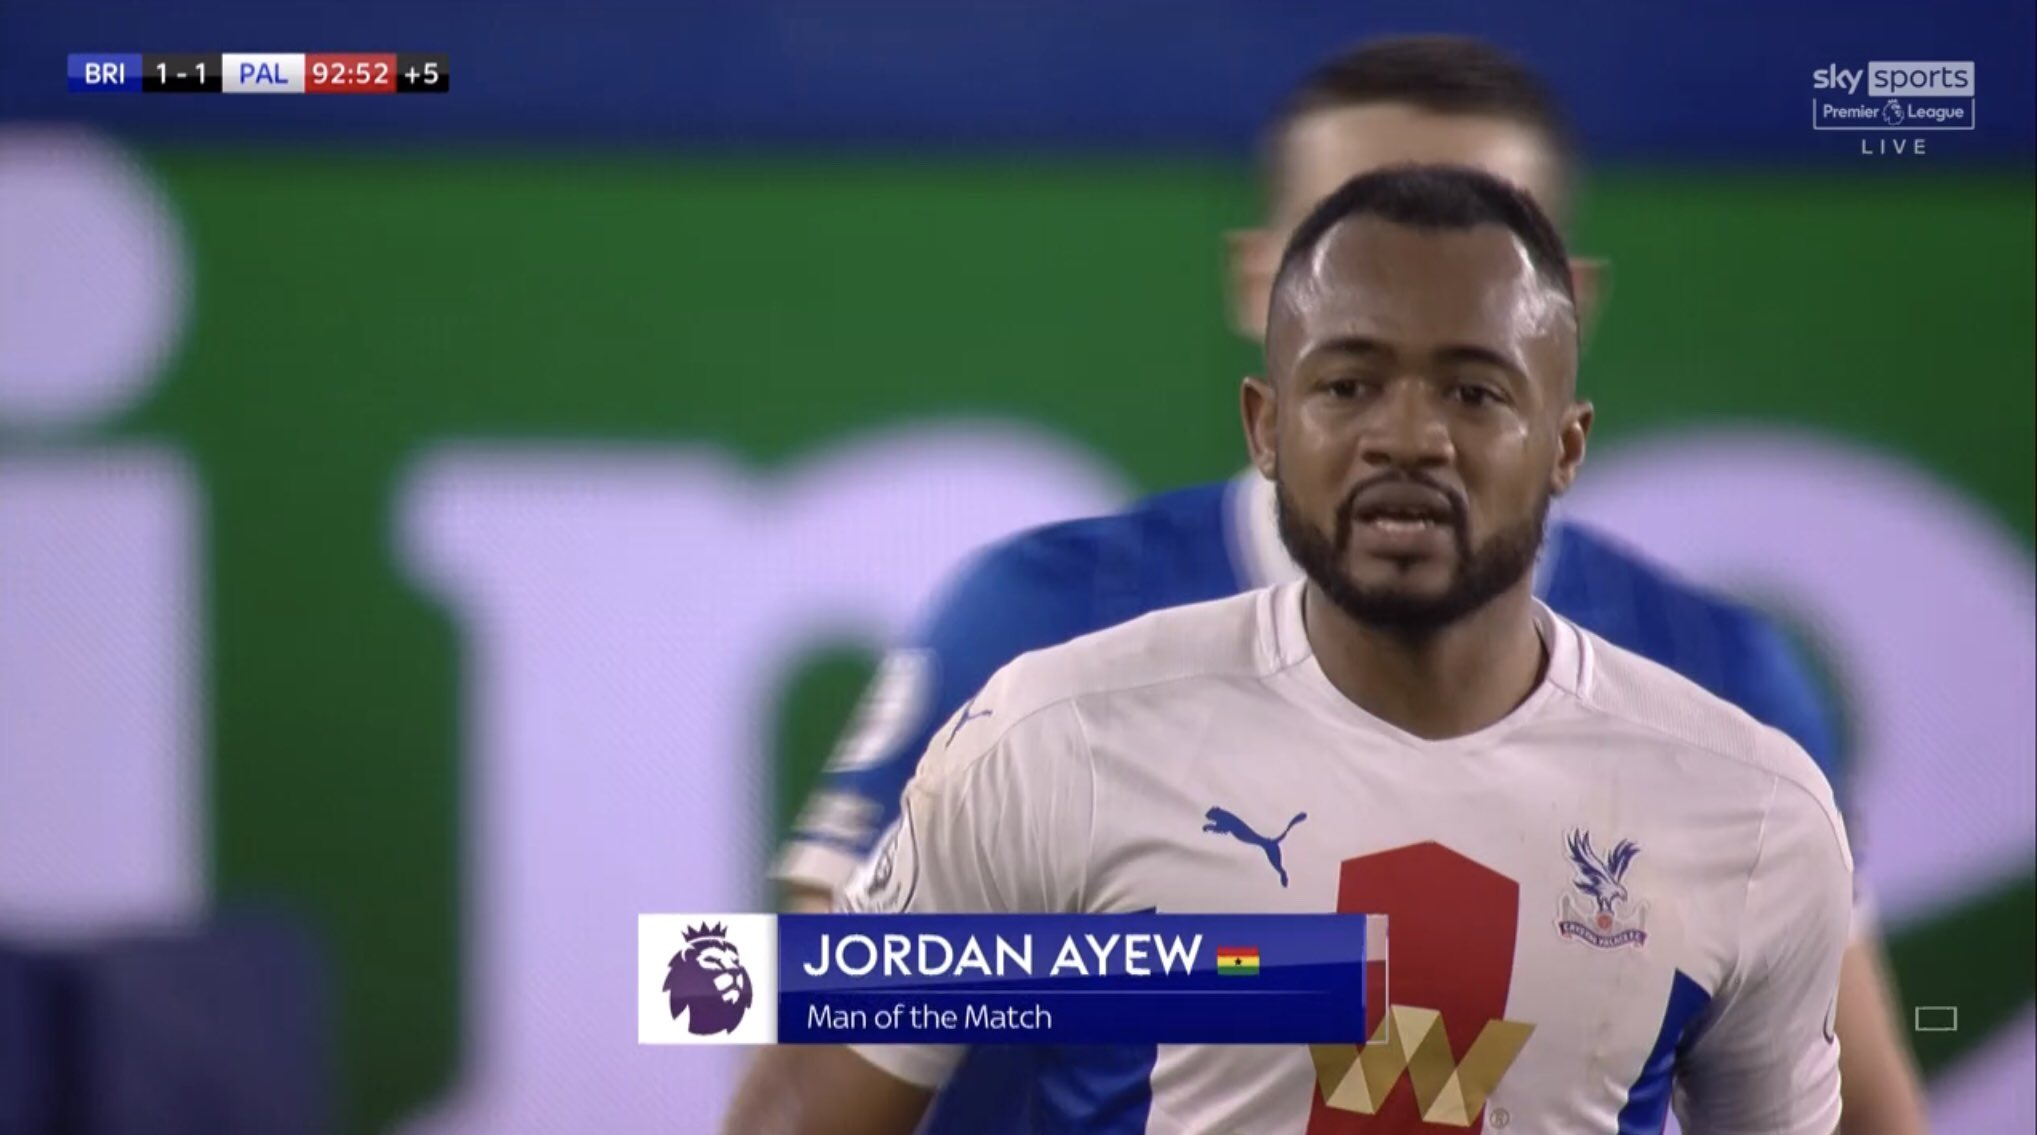 Crystal Palace manager Roy Hodgson praises Ghana striker Jordan Ayew after win at Brighton